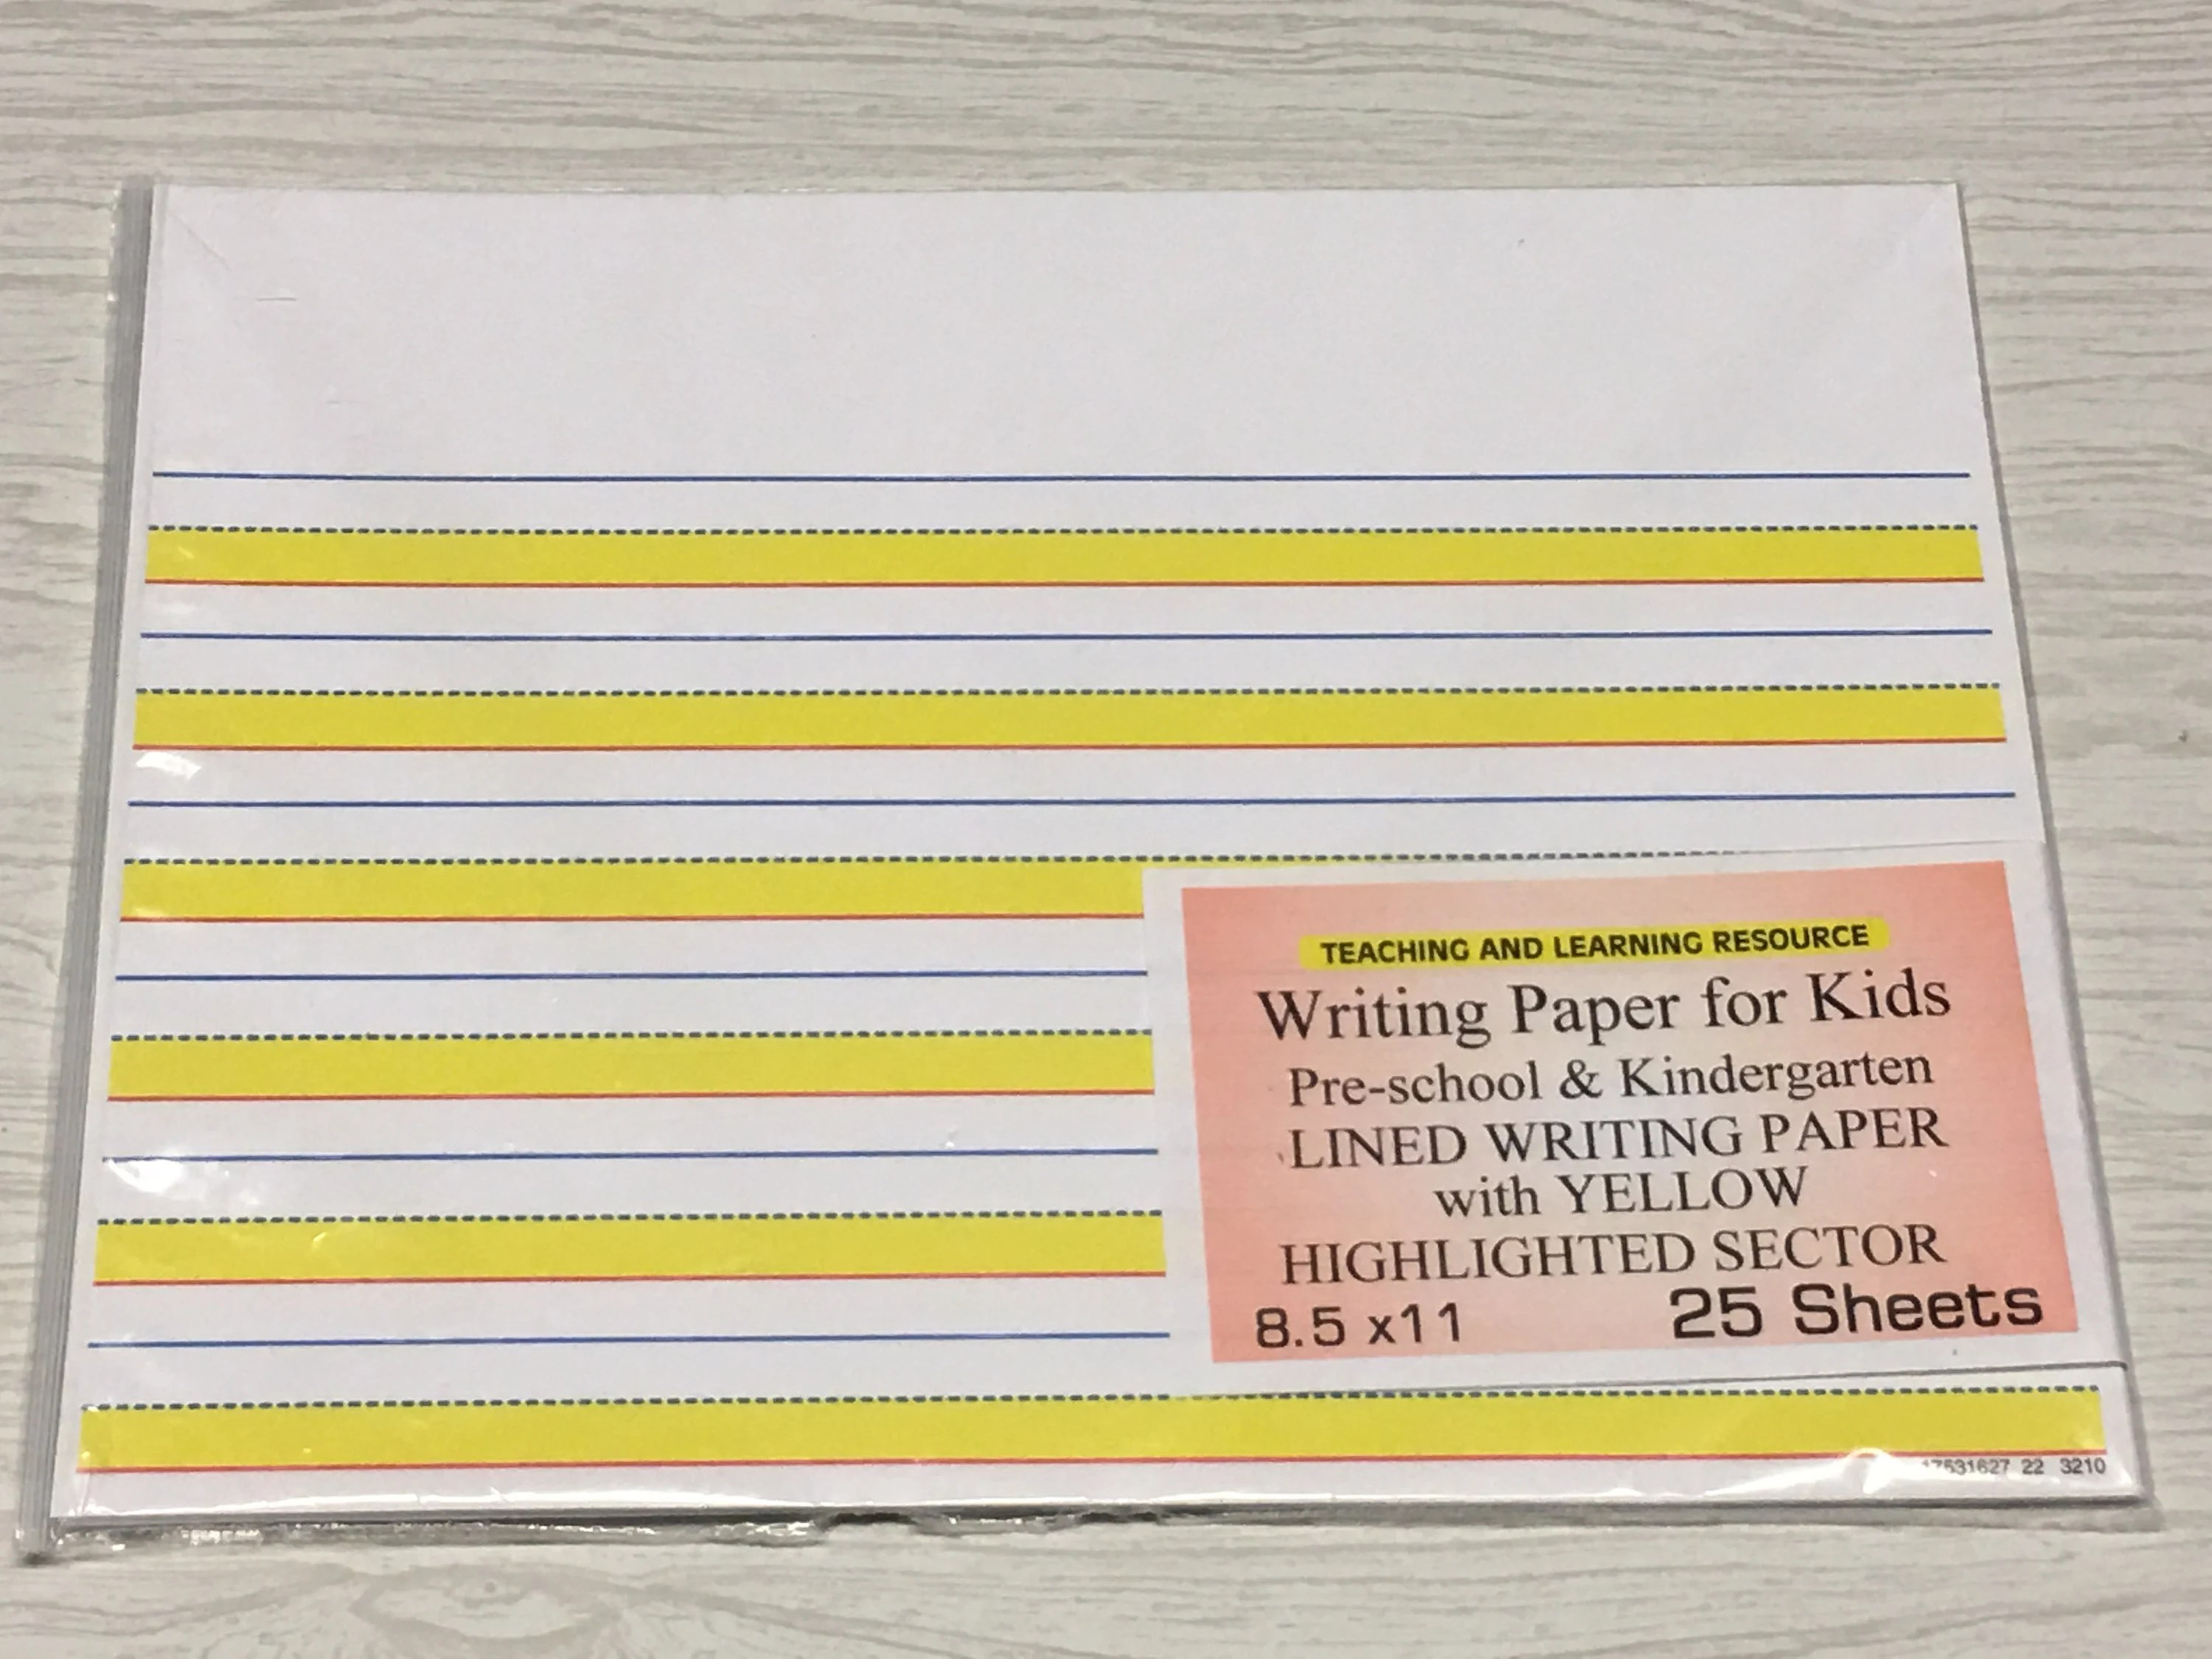 Writing Paper for Kids Lined Writing Paper with yellow Etsy